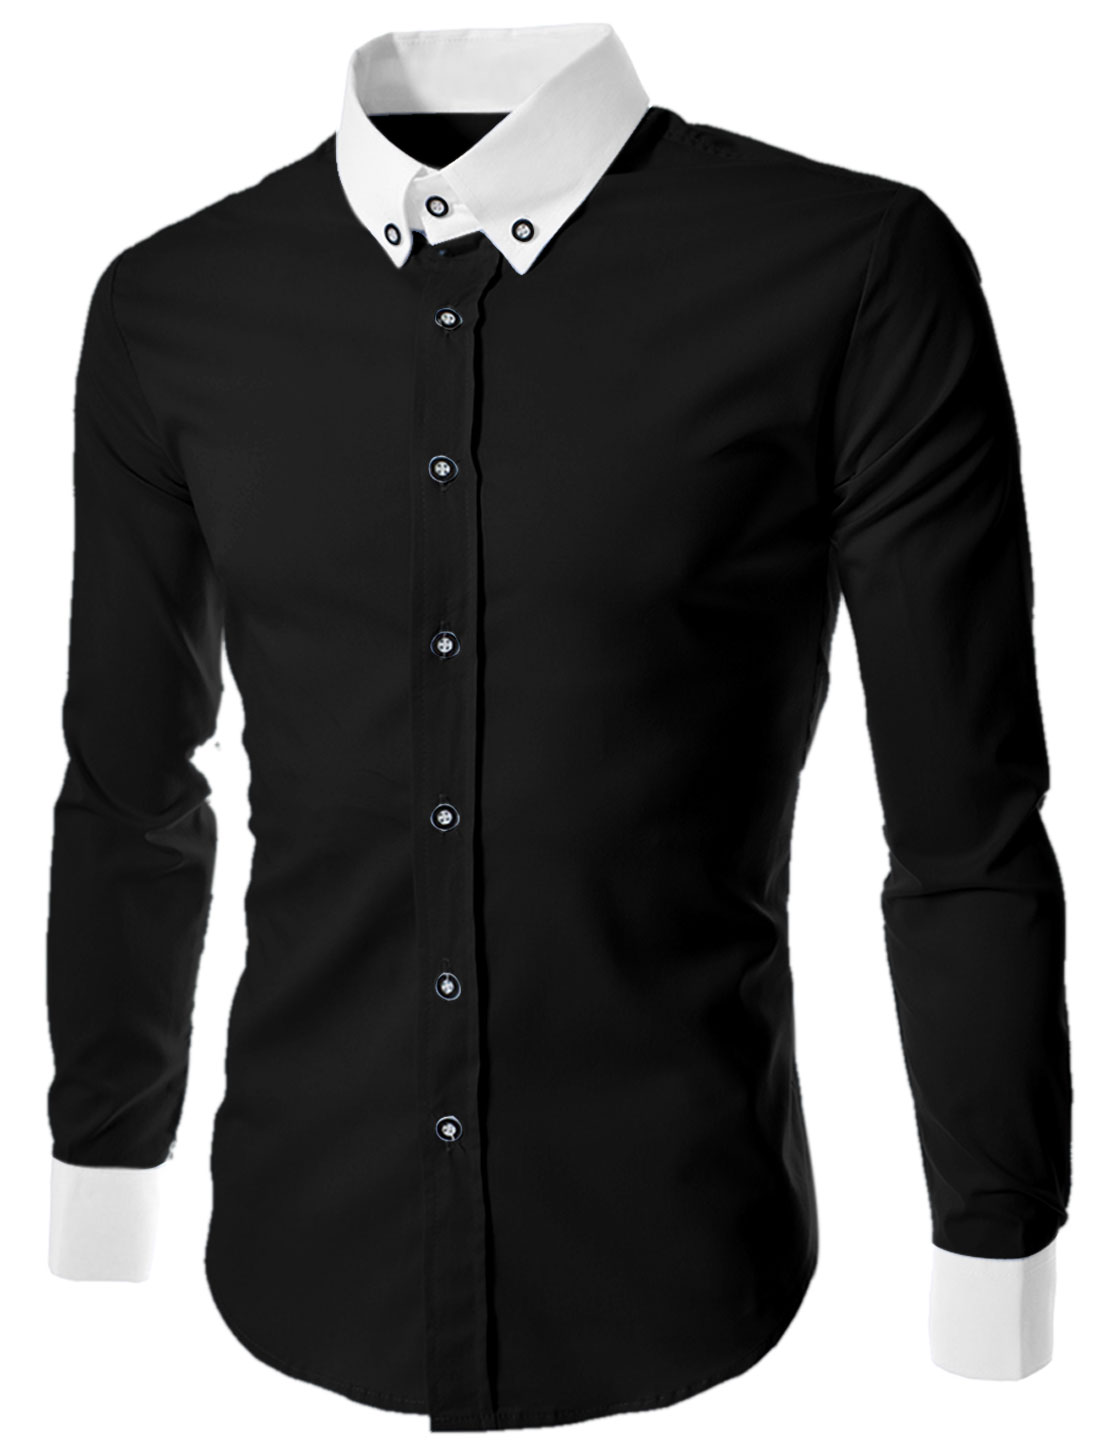 Men Convertible Collar Button Down Contrast Collar Cuffs Shirt Black M